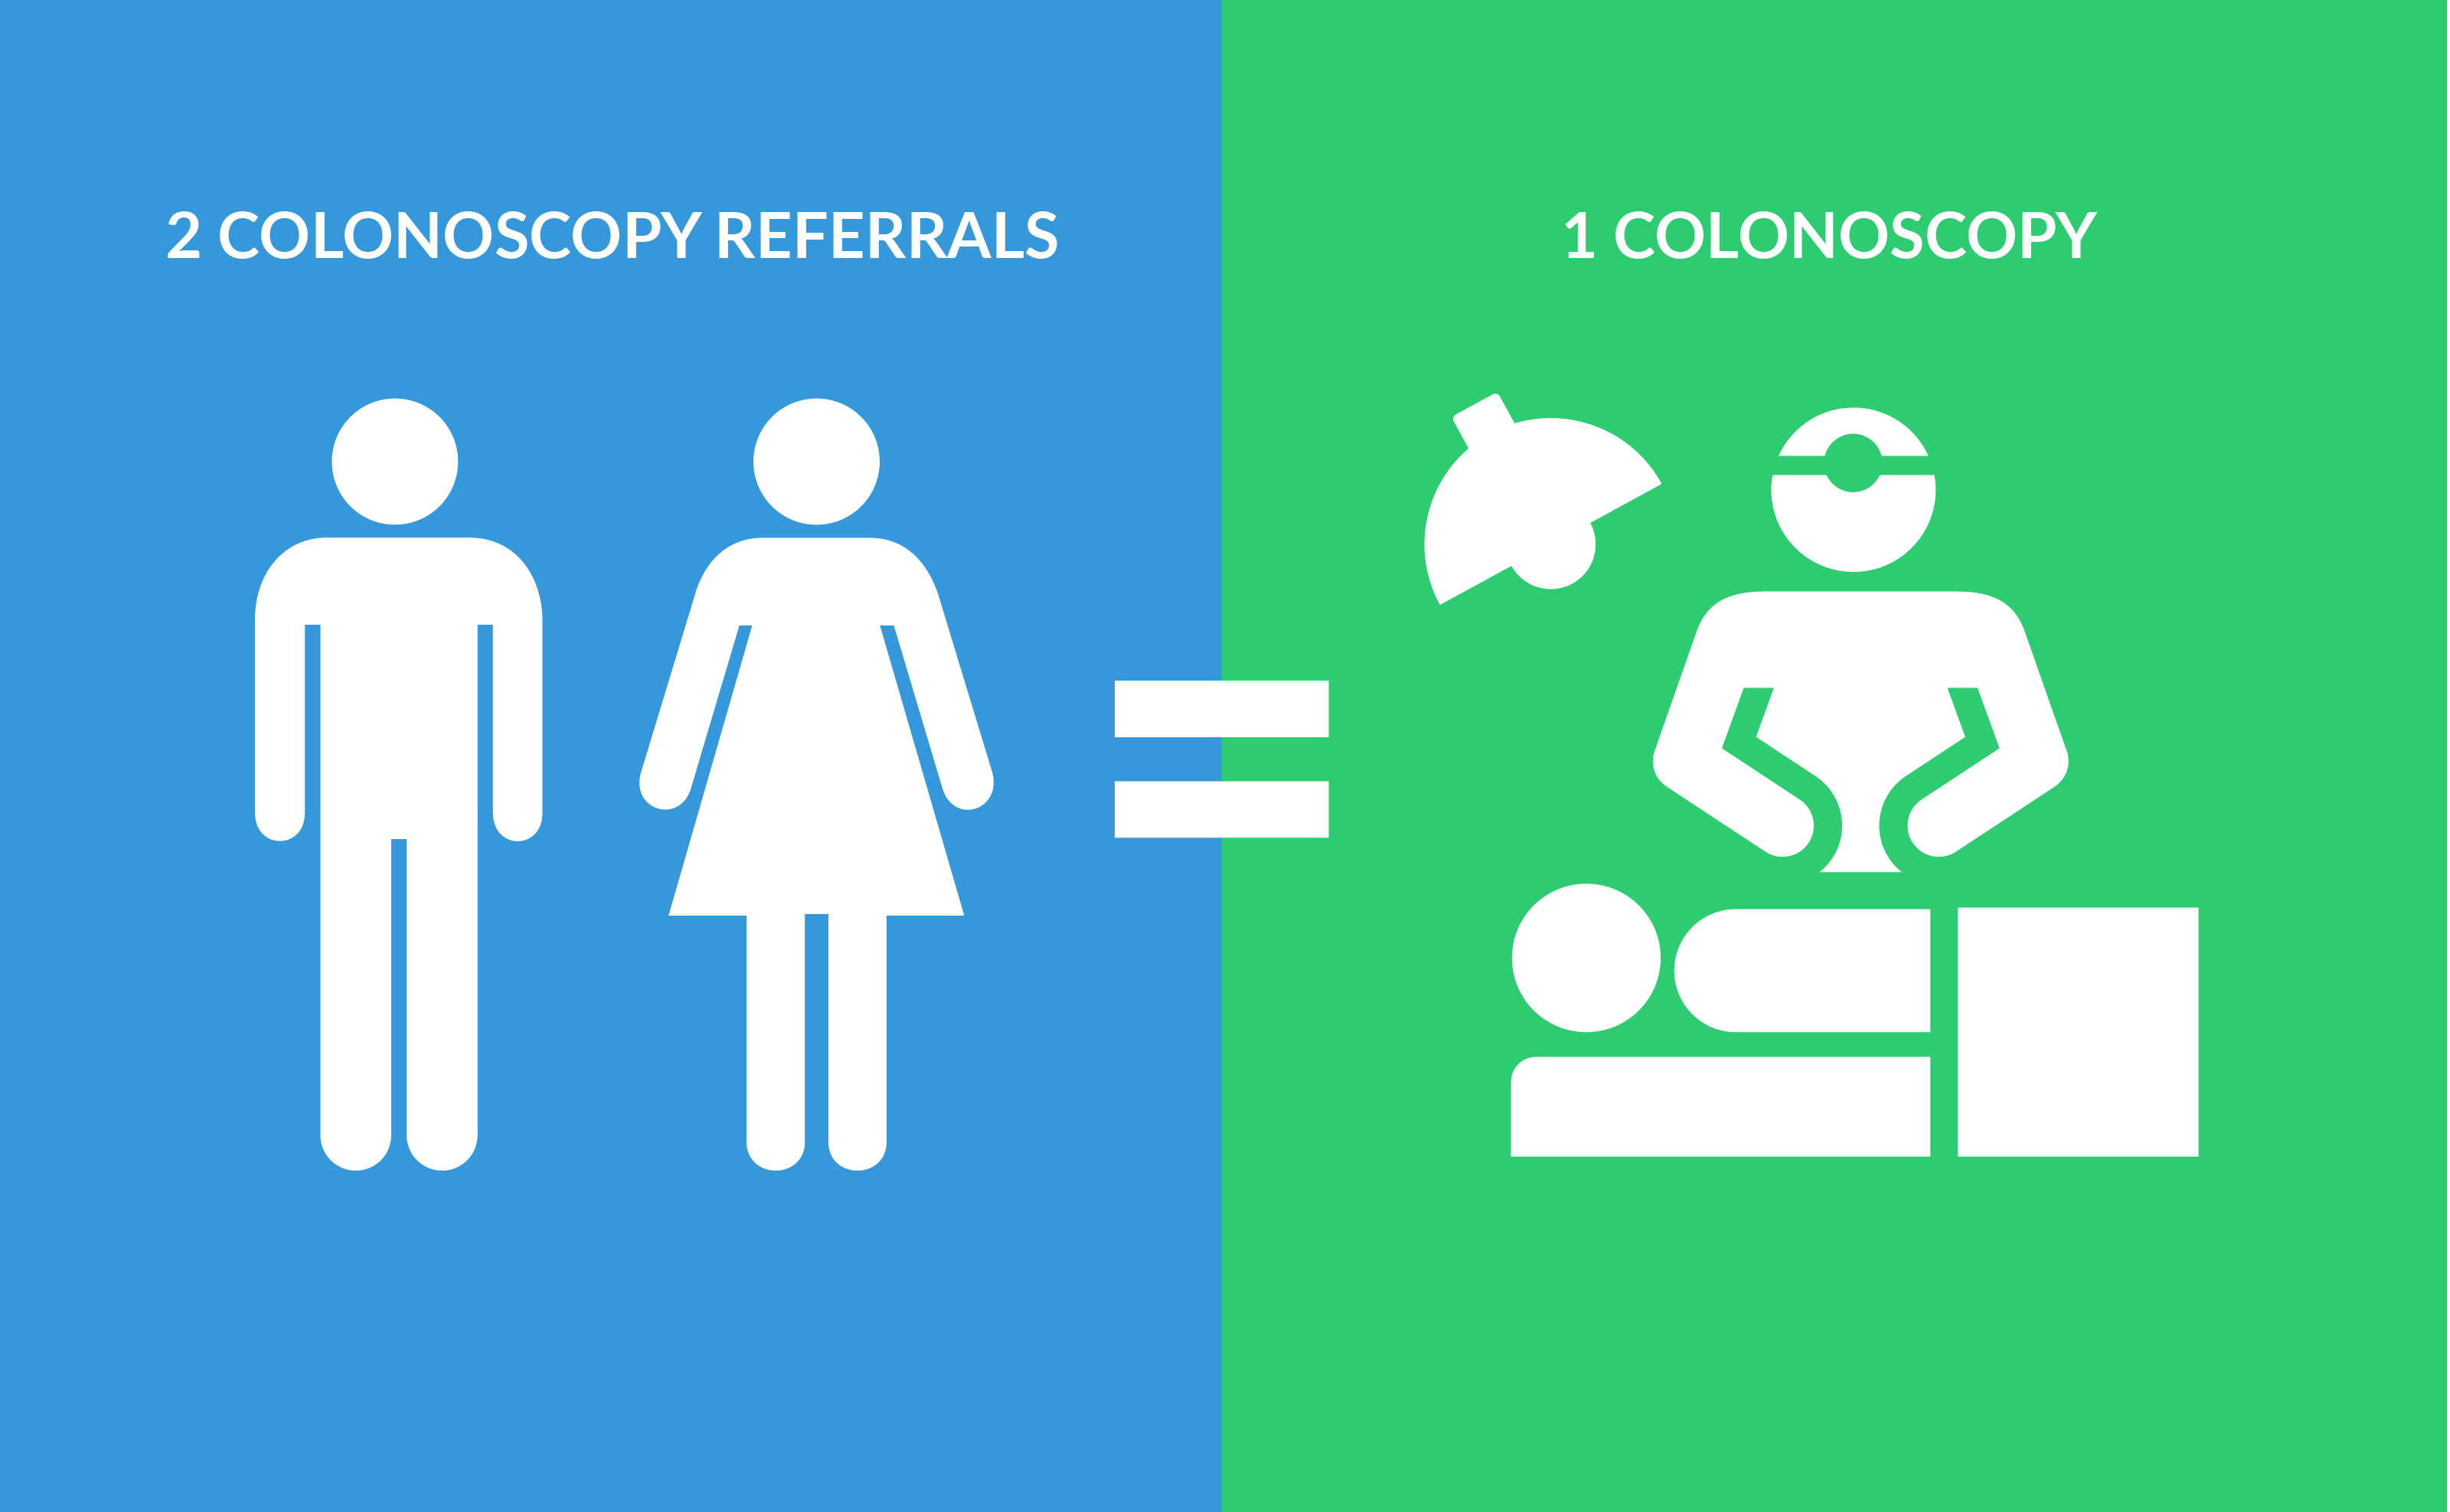 colonoscopy-referrals.png